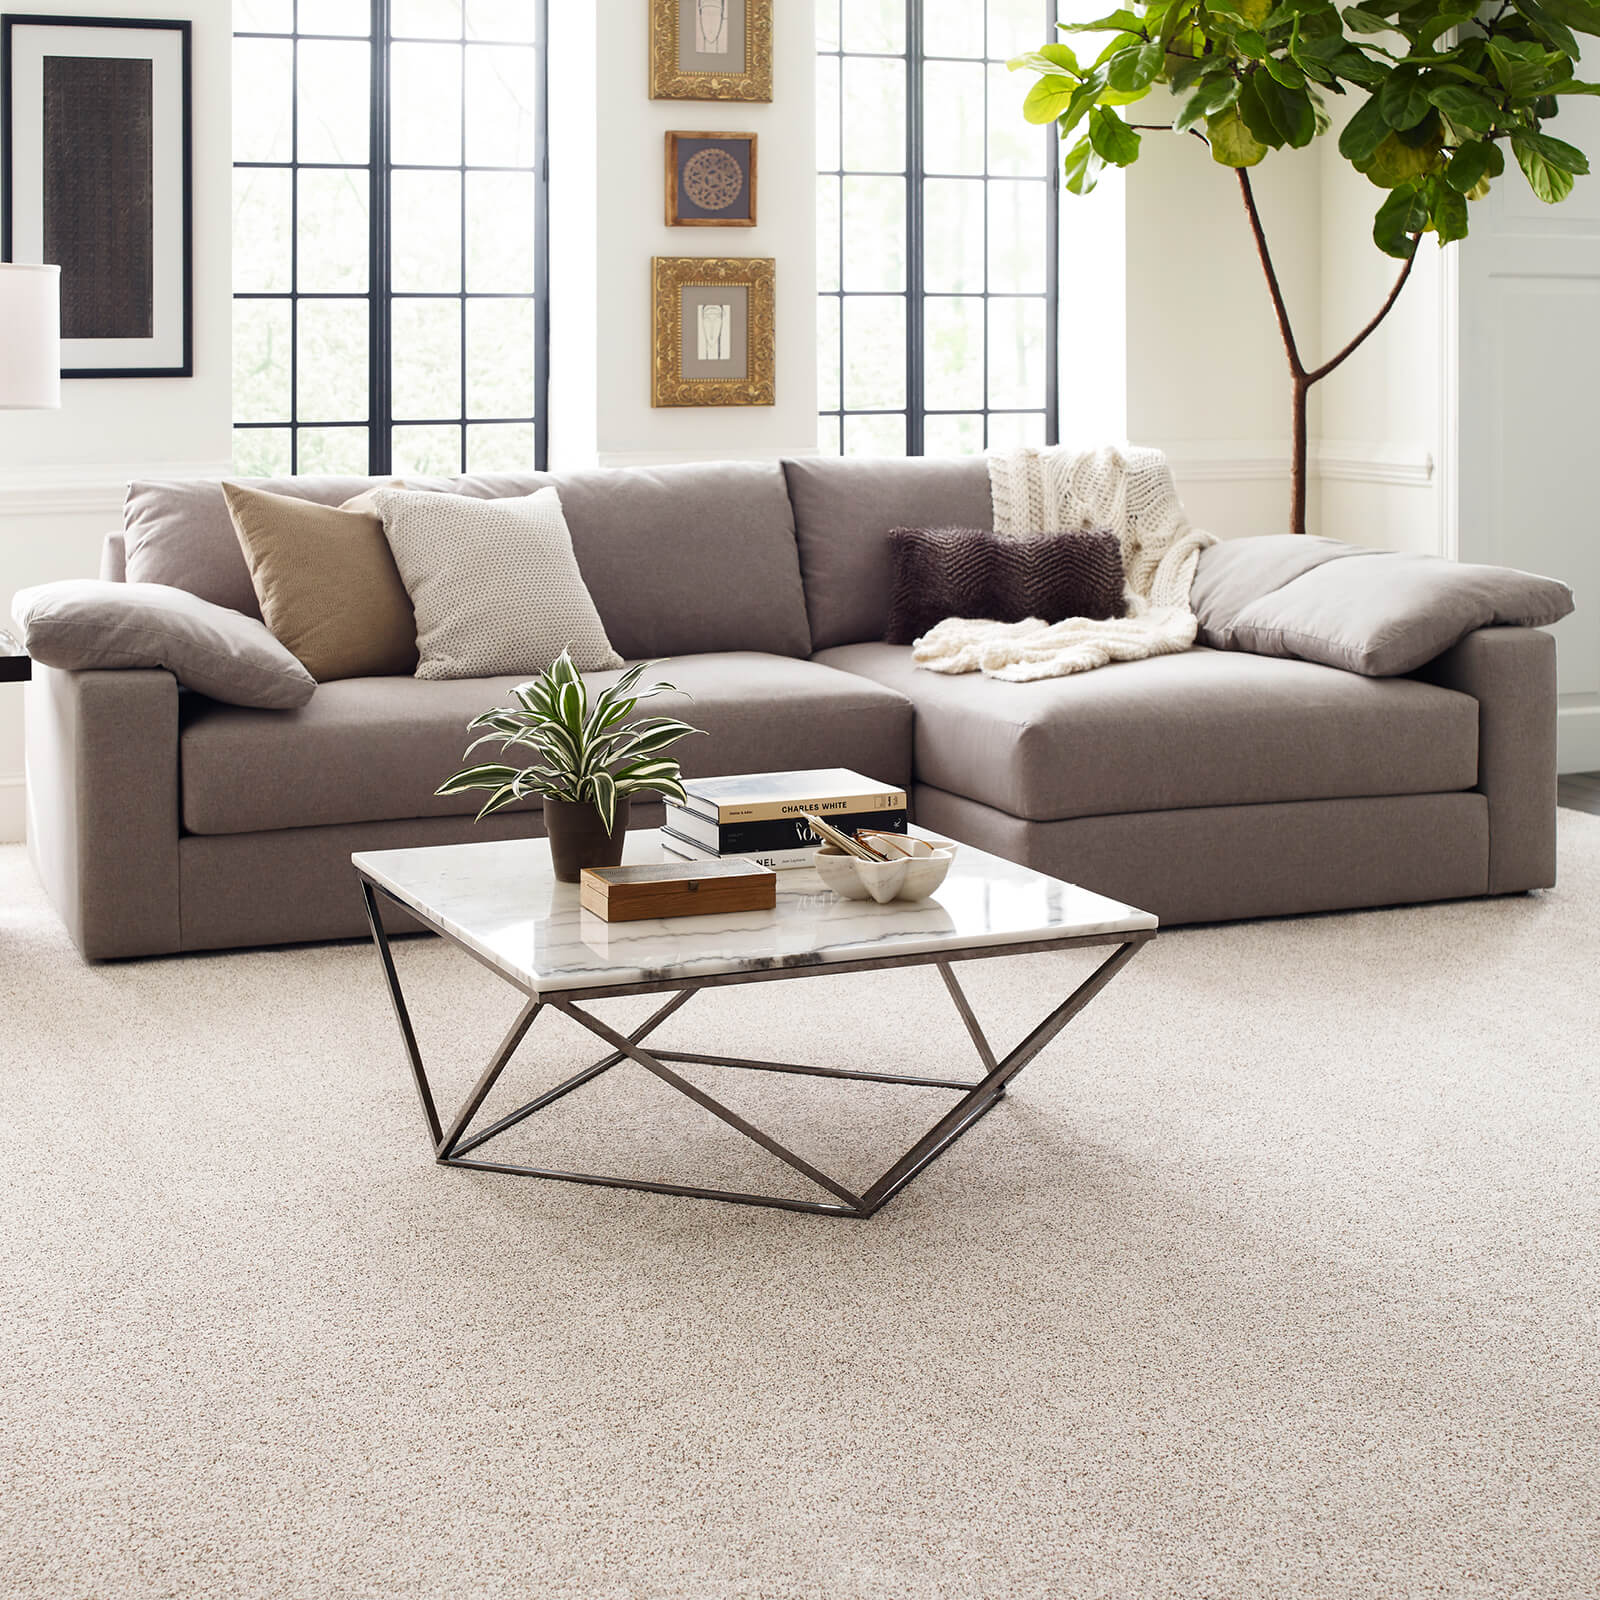 Carpet in living room | Floorida Floors